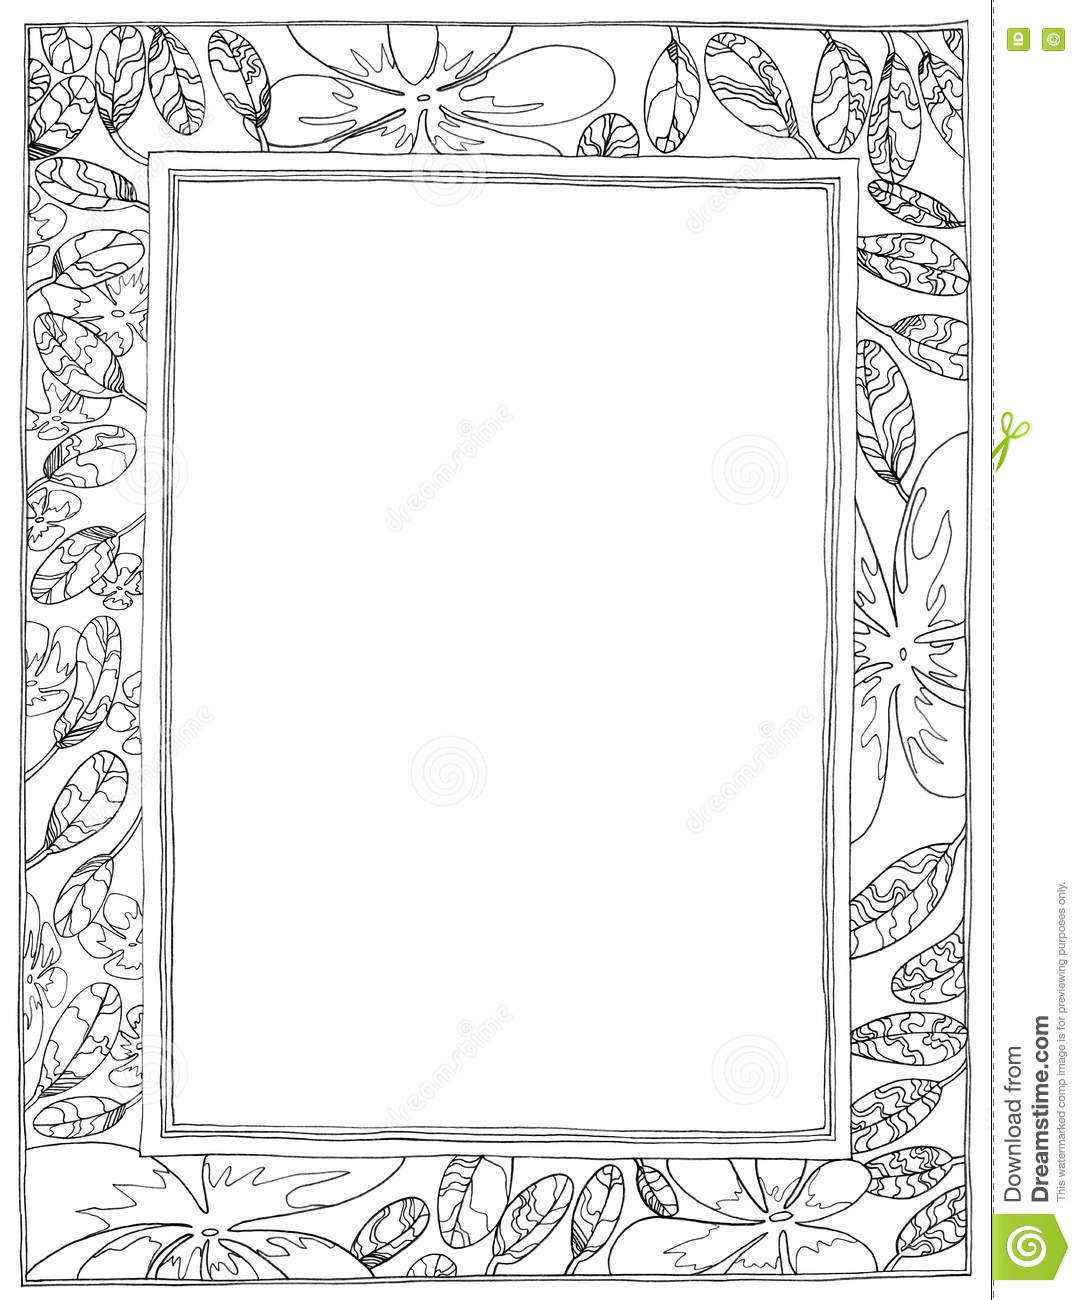 picture frame plumeria applied arts stock illustration illustration of applied nature 74021632 dreamstime com